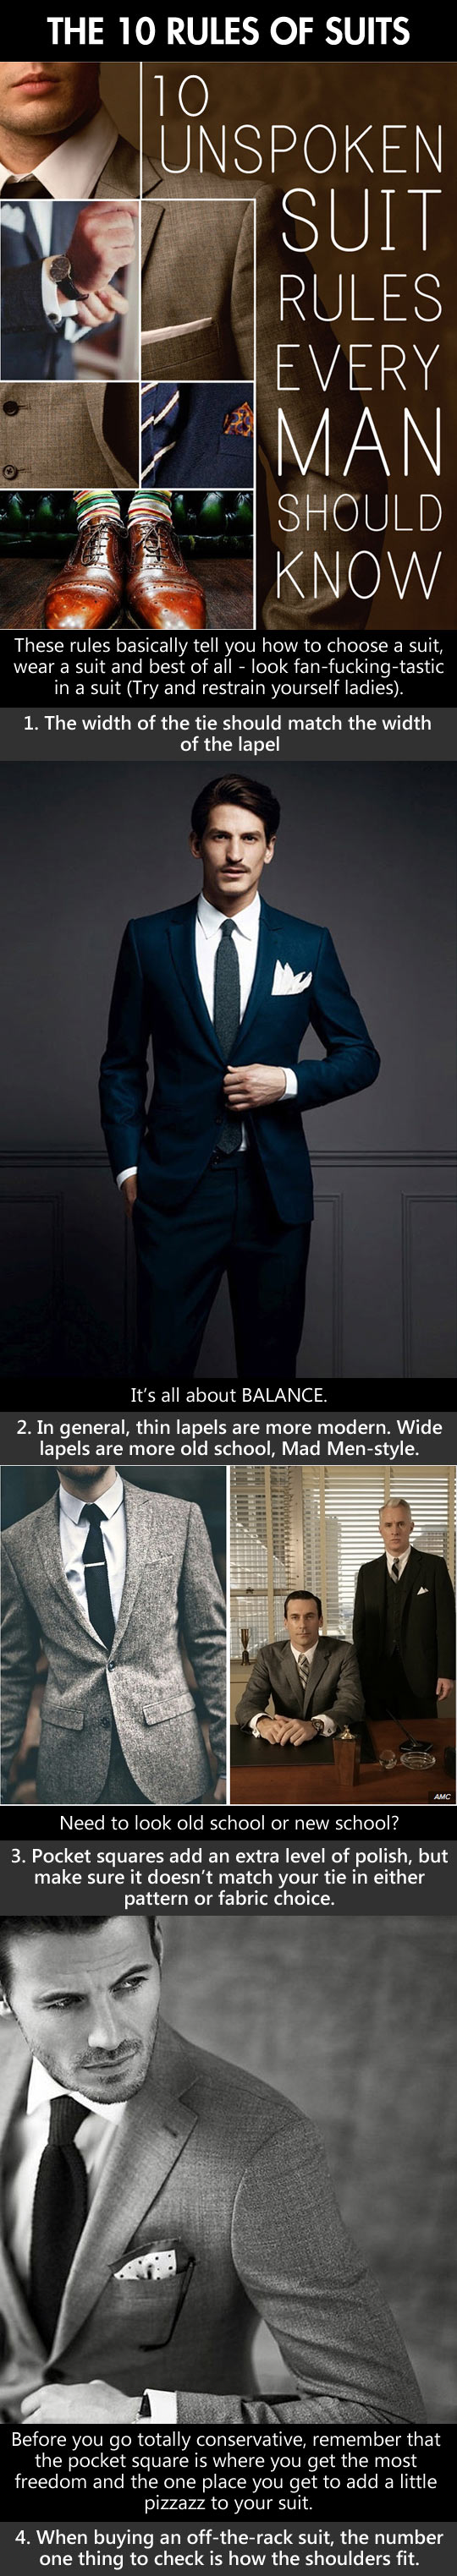 funny-suit-man-rules-shoes-tie (1)